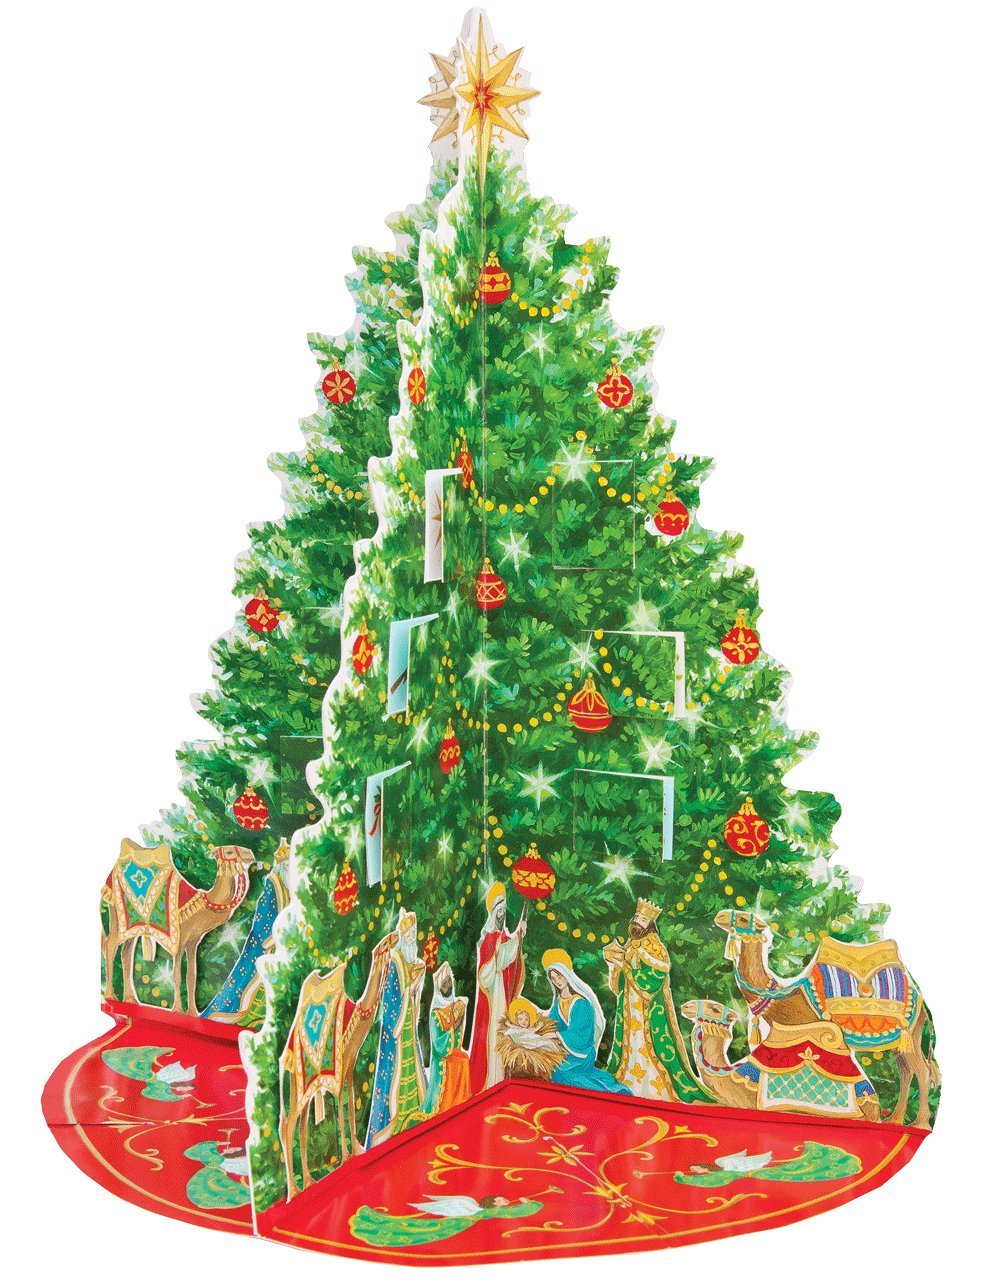 Caspari Nativity Tree Pop-Up Advent Calendar classic Christmas tree design from Caspari and designed by Janine Moore is a lovely and festive tradition for any family to celebrate the days of December leading up to Christmas